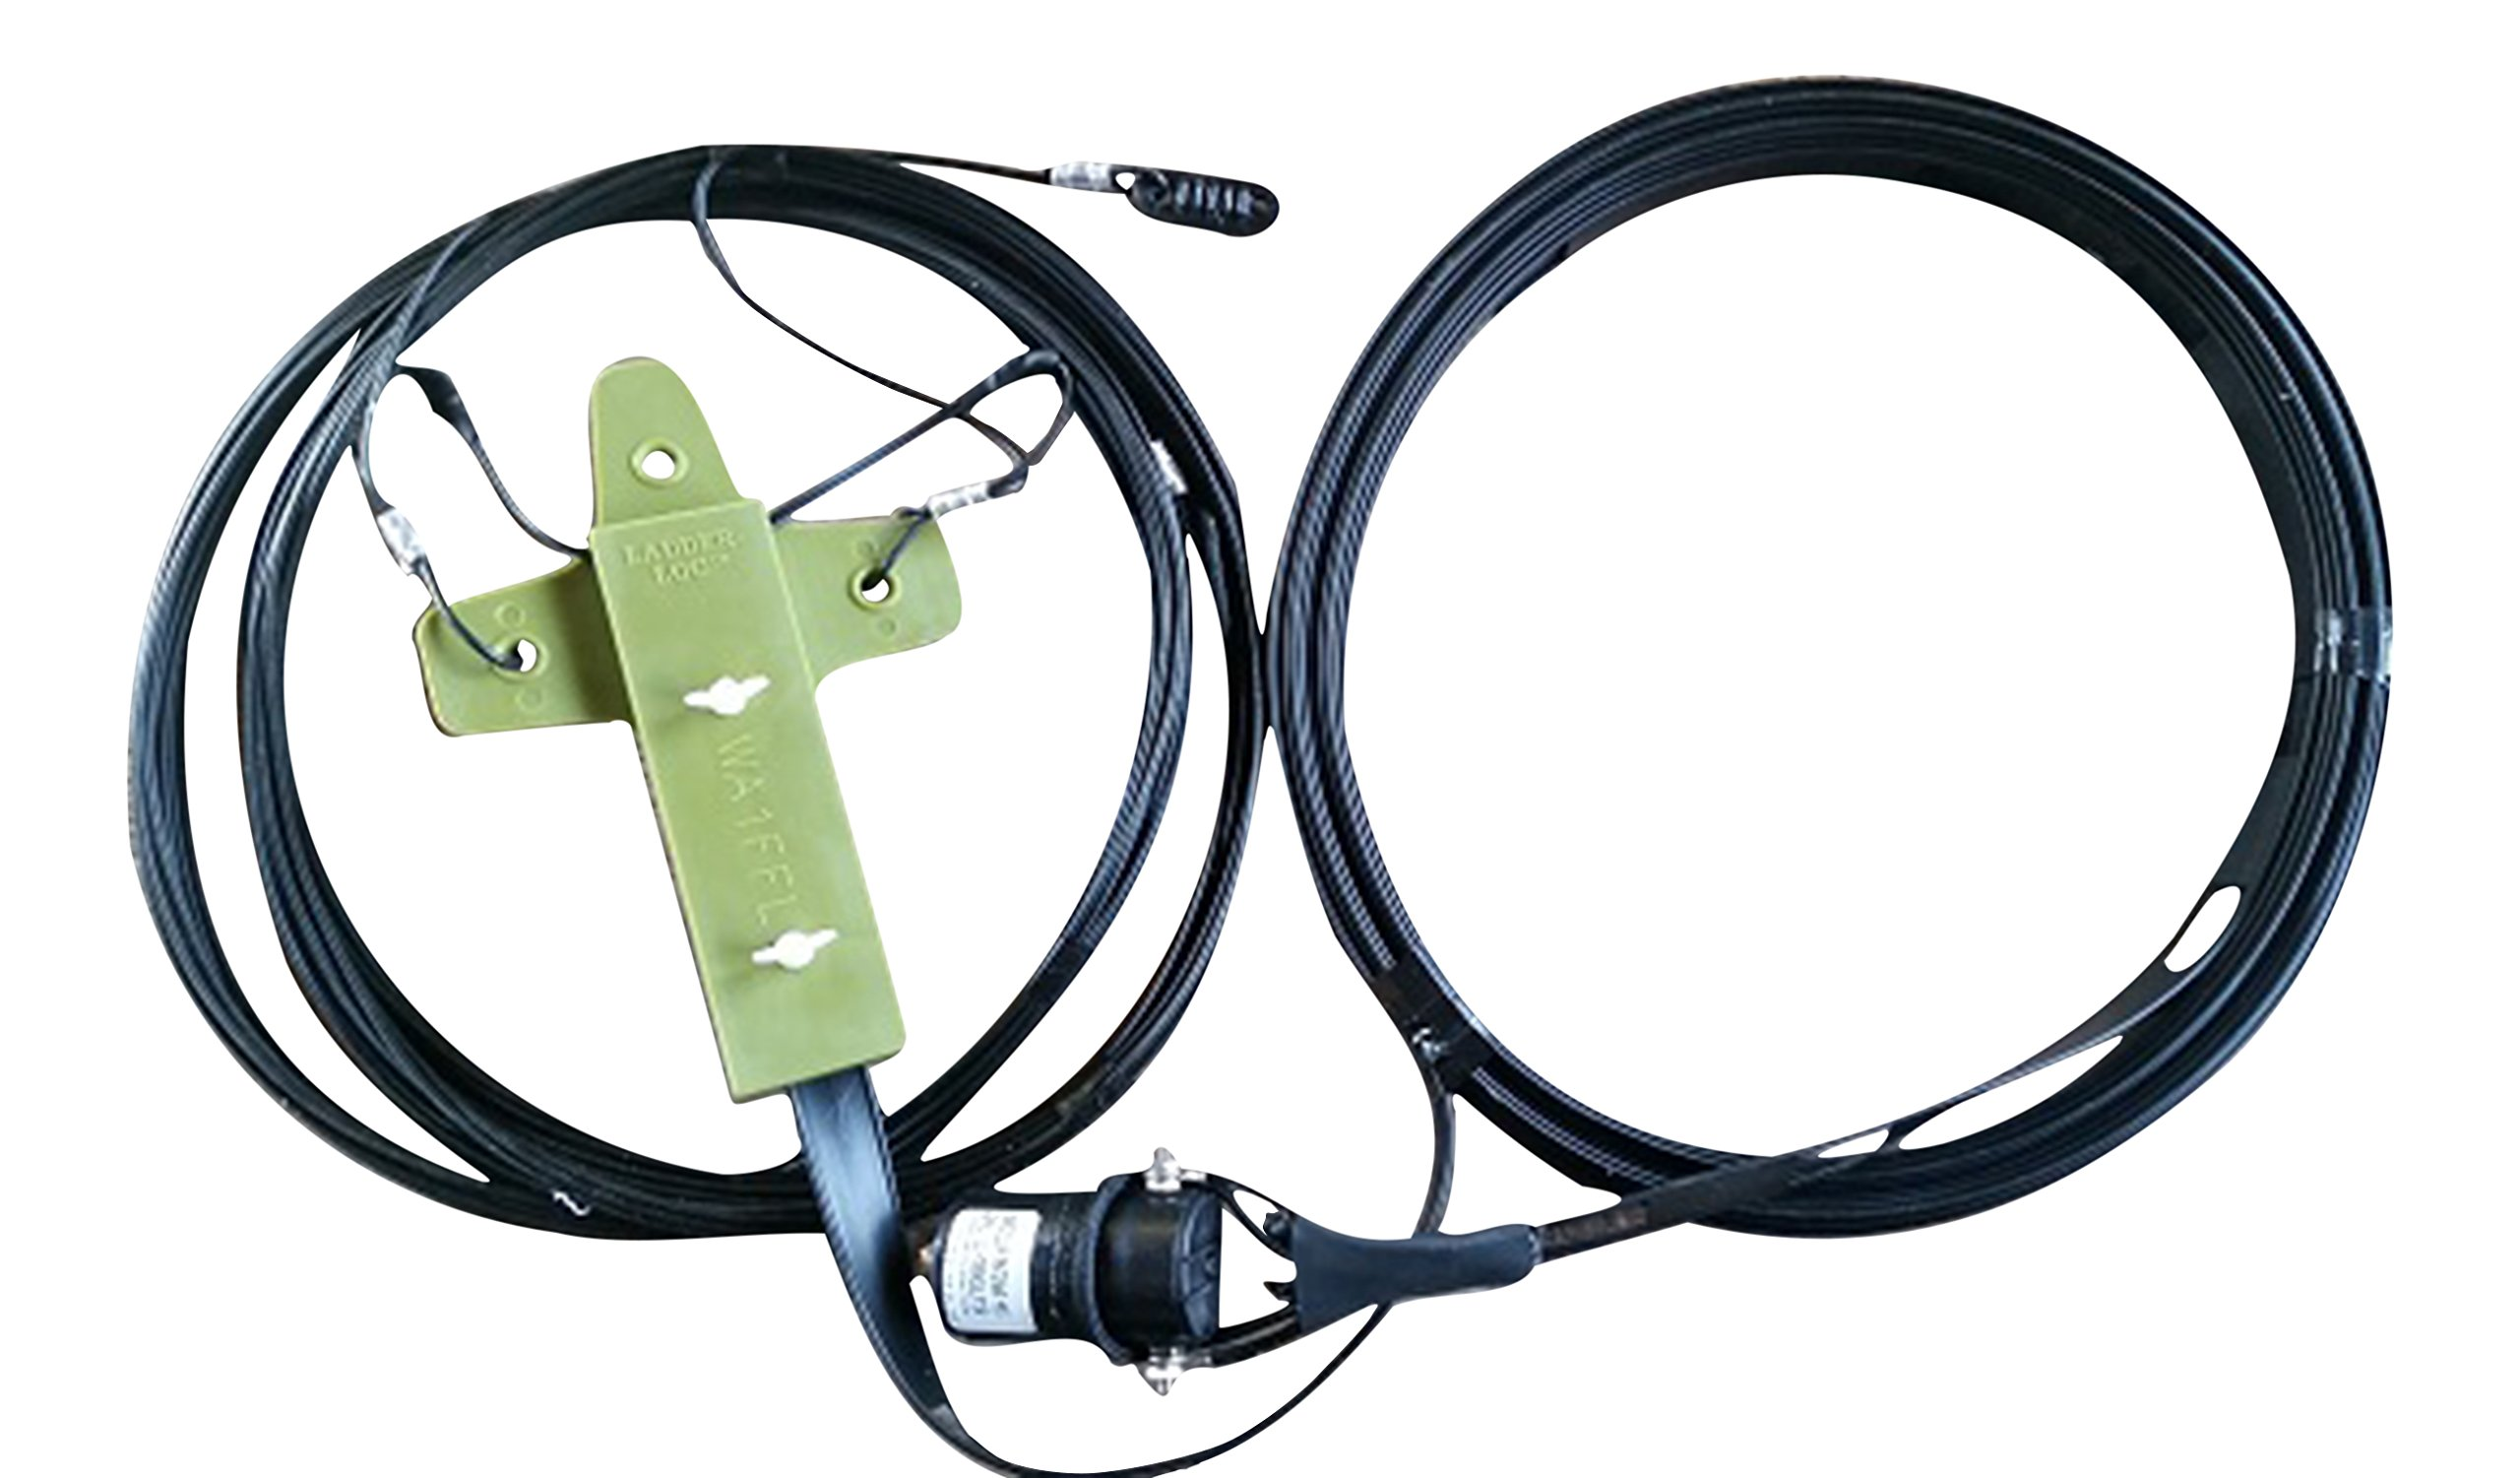 ZS6BKW / G5RV Optimized Multi Band HF Dipole Antenna Flex-Weave by Ni4L Antennas & Electronics (Image #1)